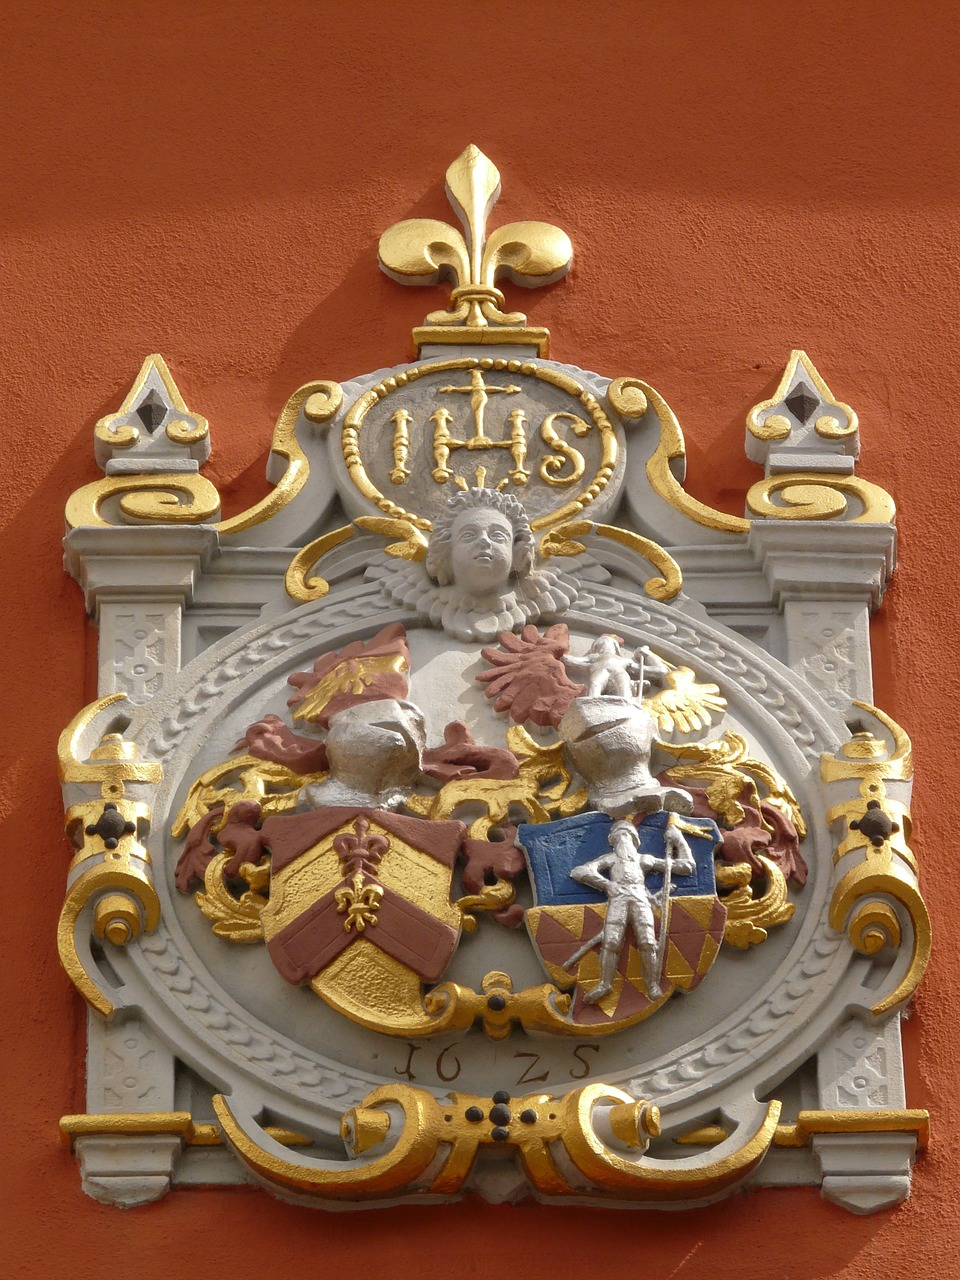 coat of arms alliance coat vicarage free photo